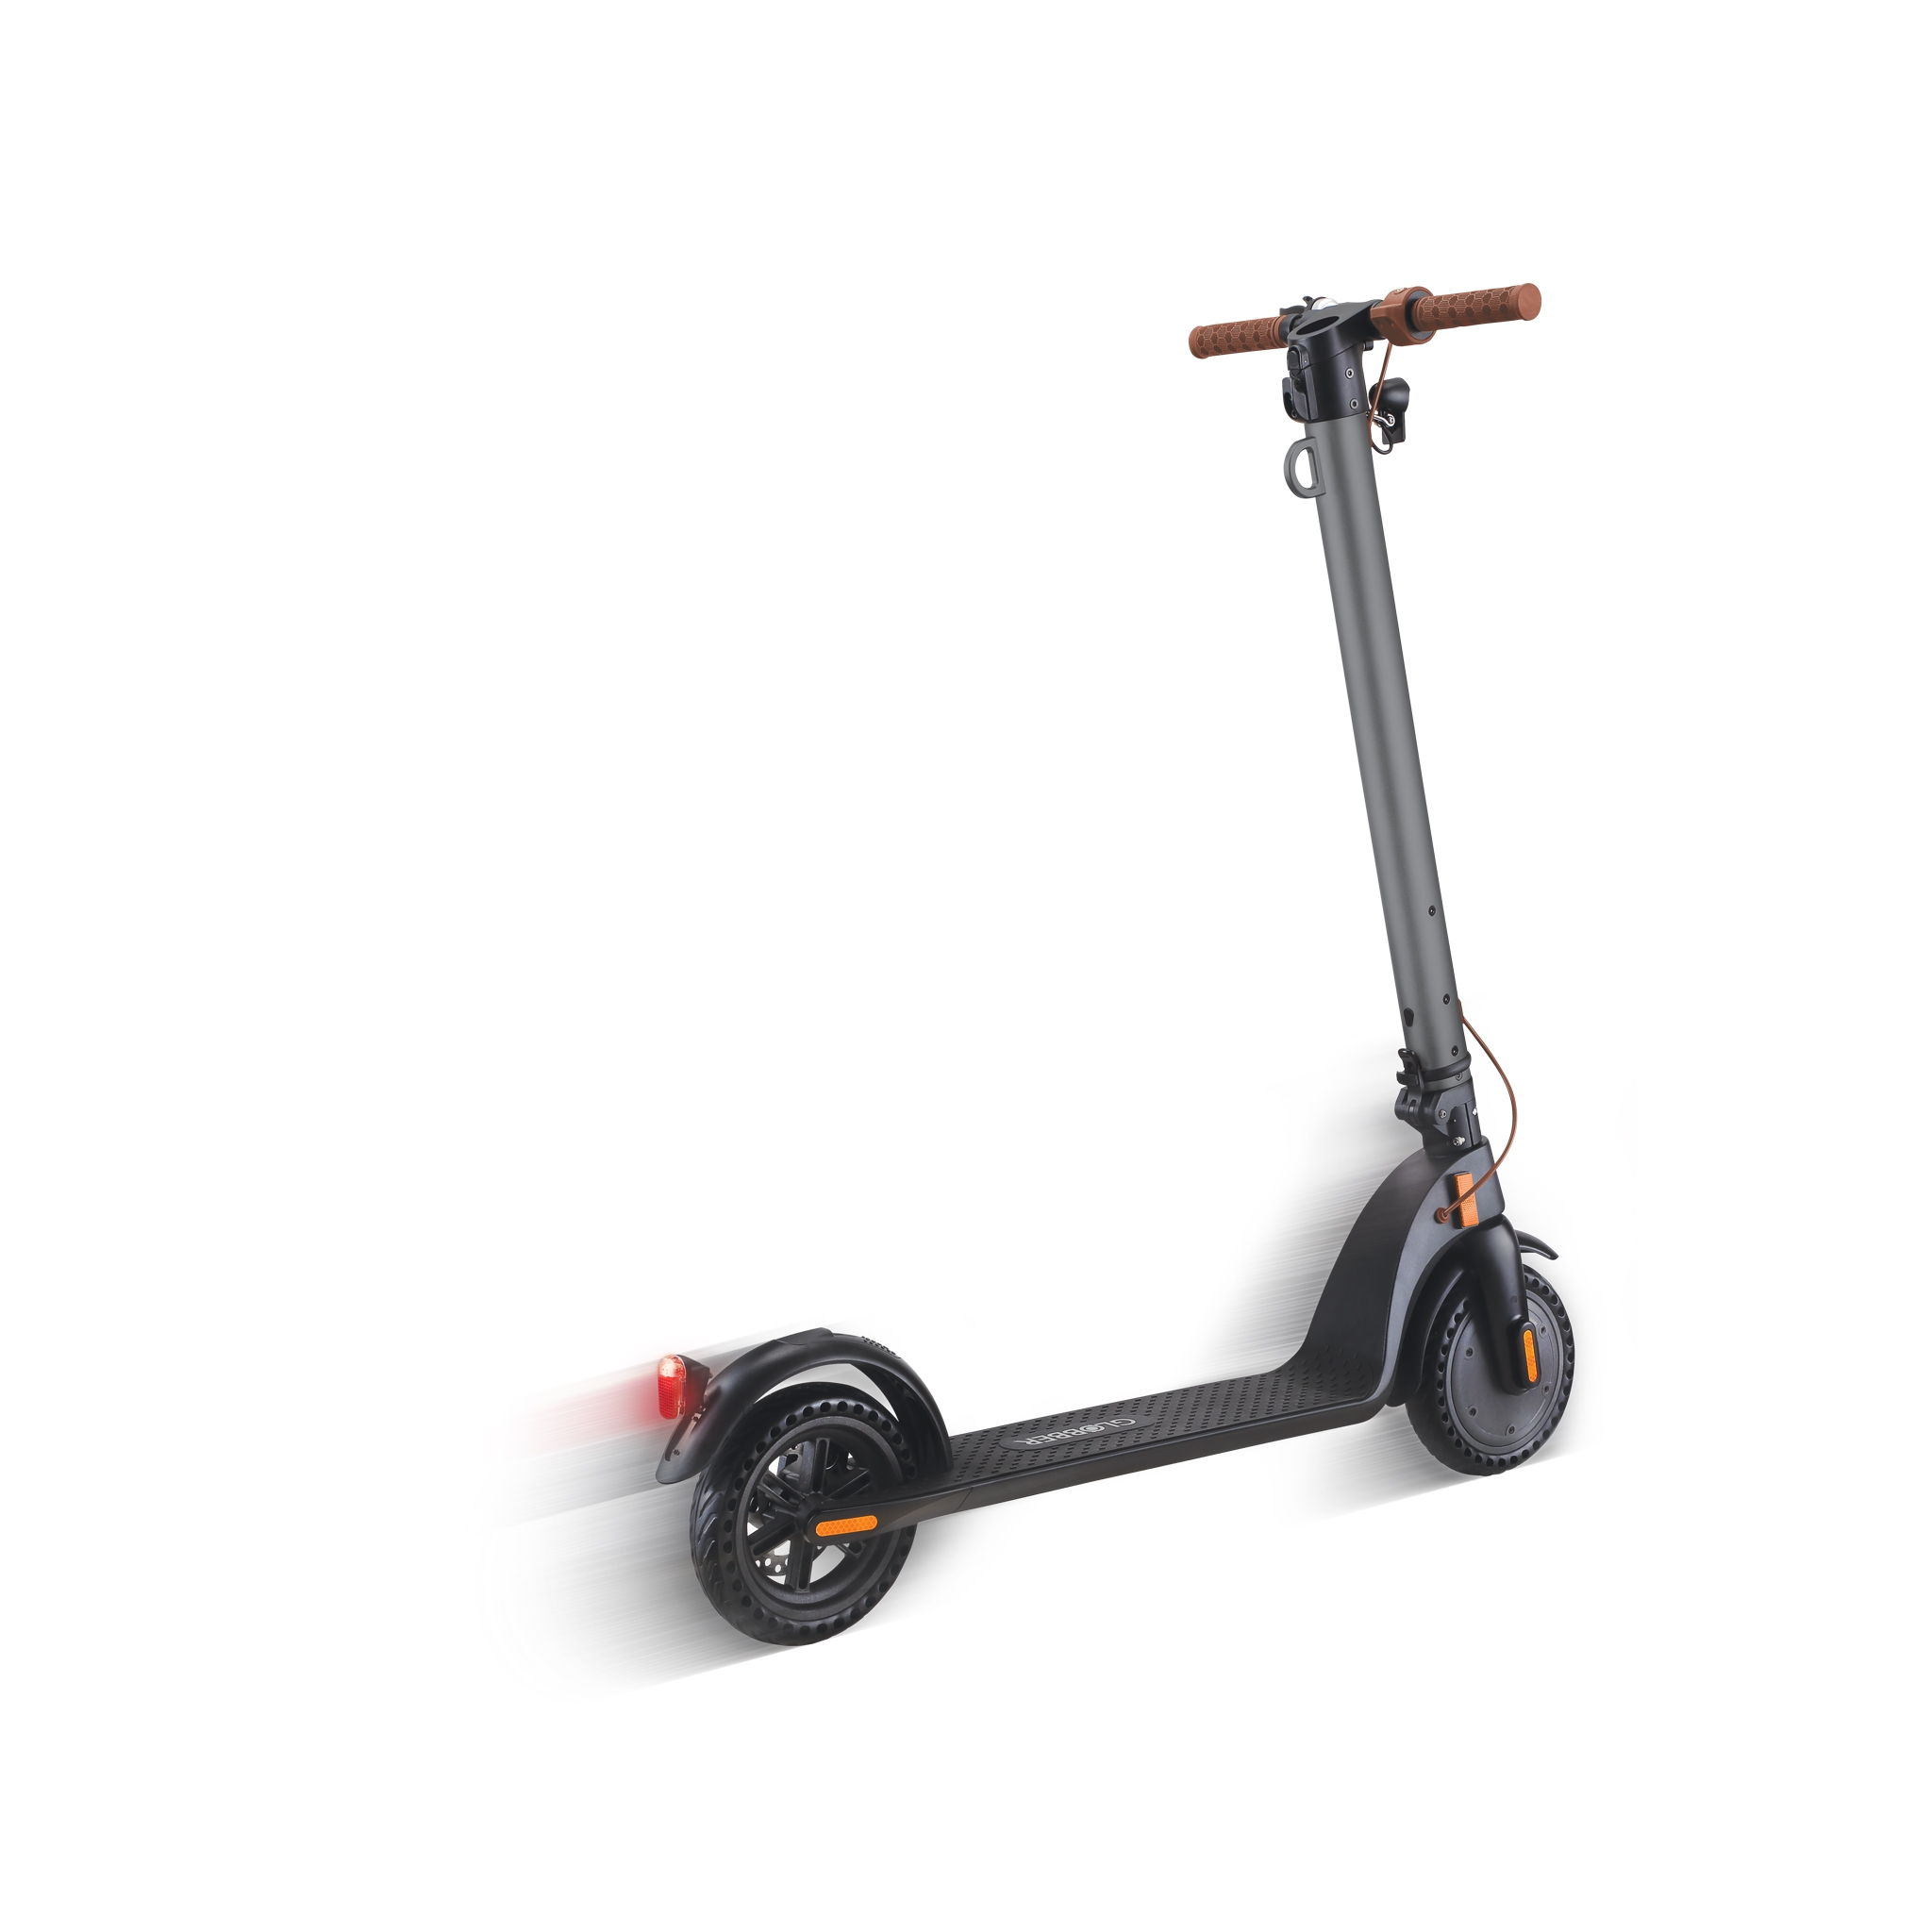 Globber-ONE-K-E-MOTION-23-electric-scooter-for-teens-and-adults-with-350w-brushless-hub-motor 7